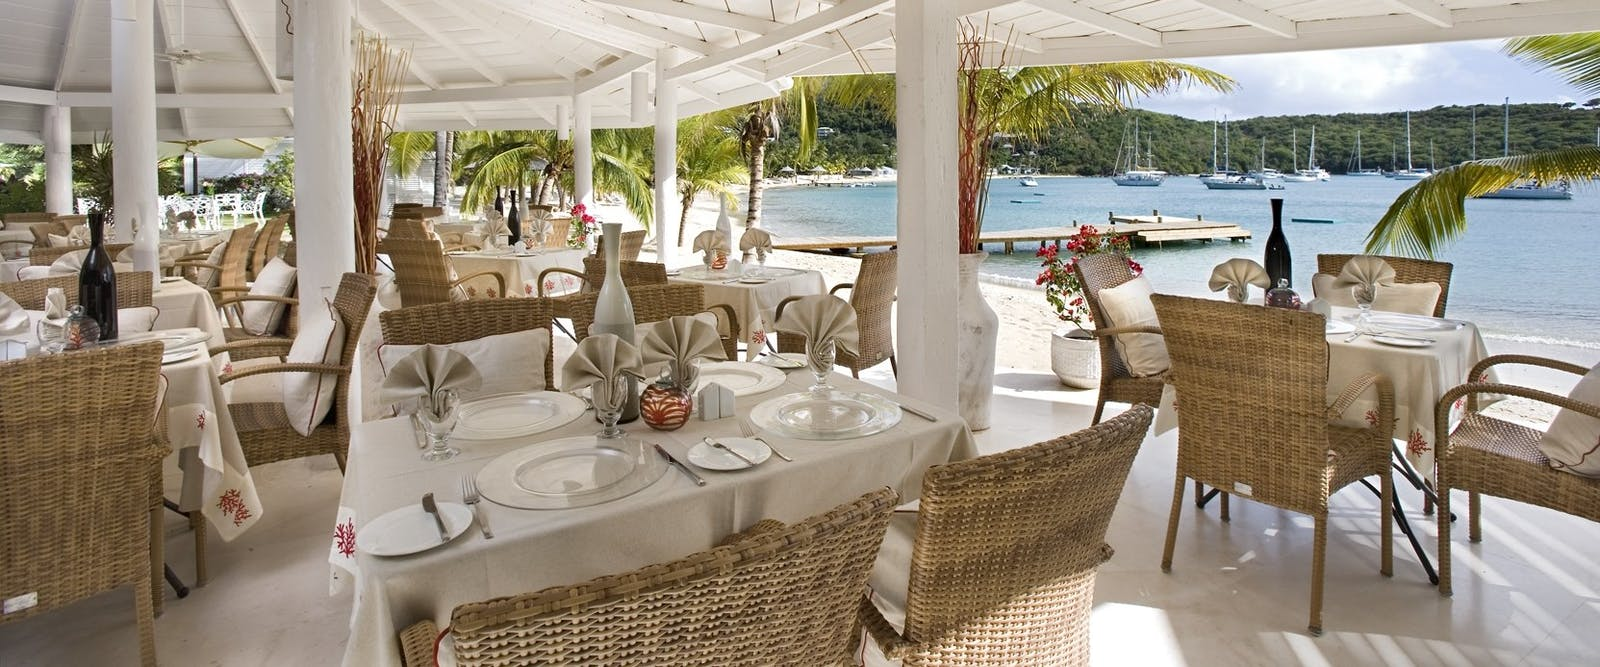 Reef Restaurant at The Inn at English Harbour, Antigua